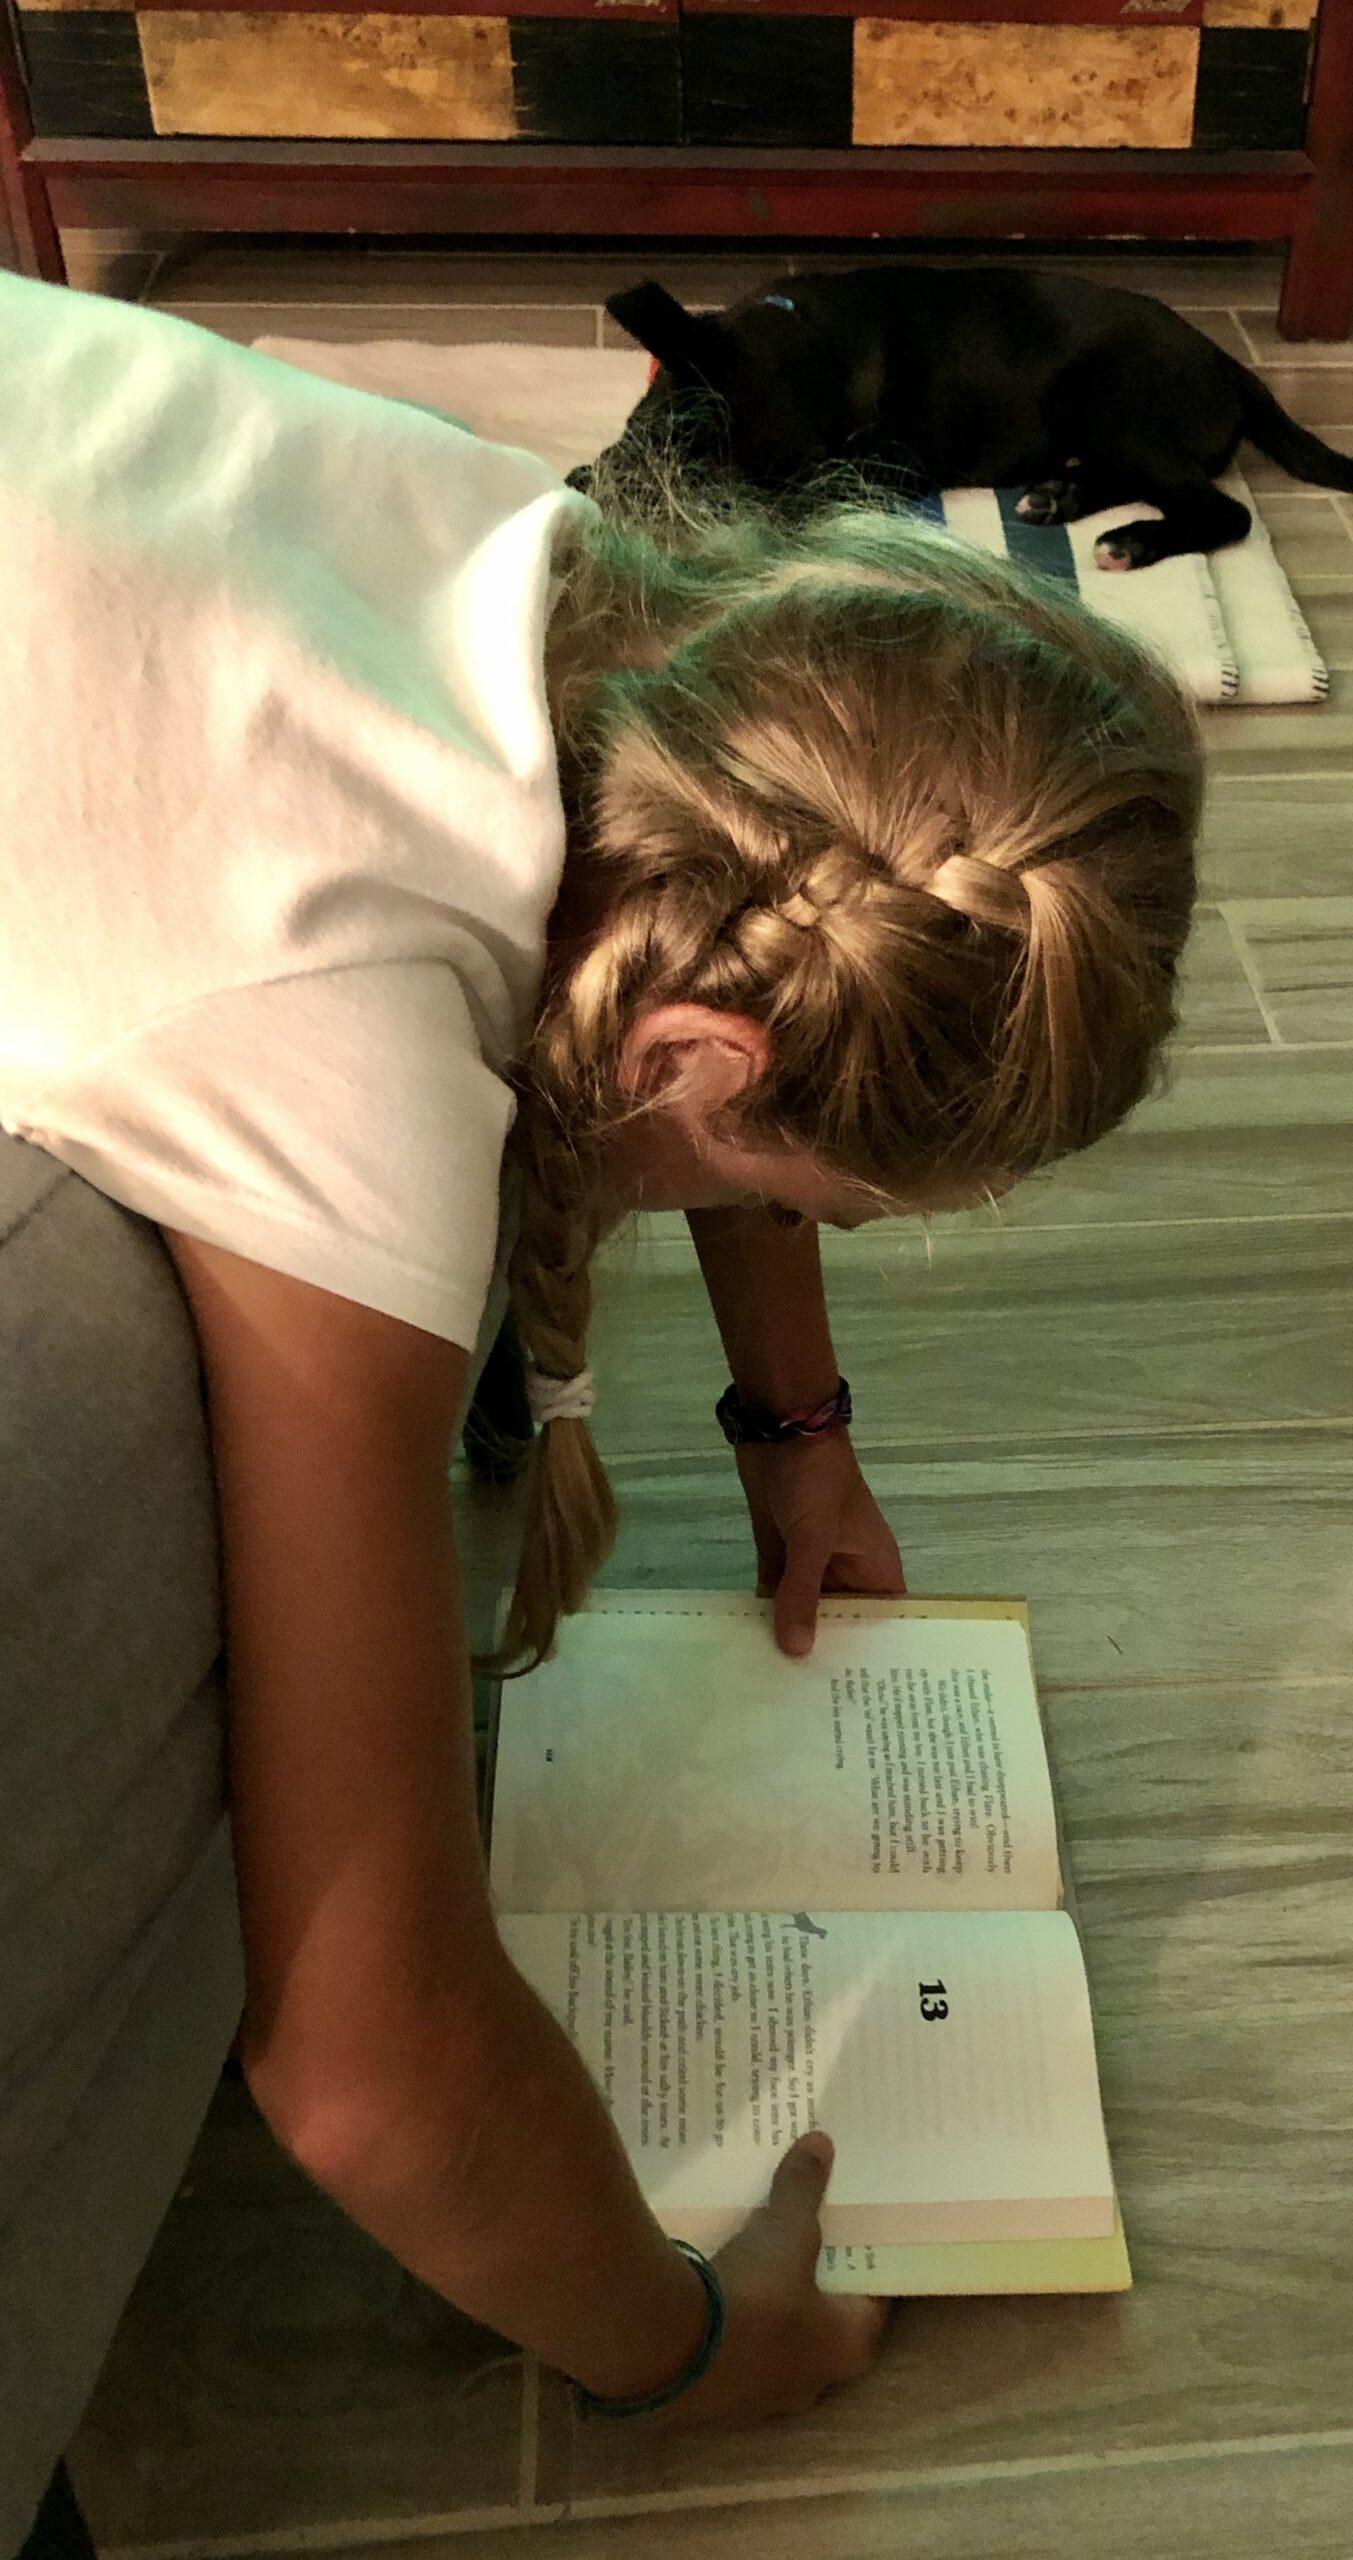 Girl reading Bailey's Story for the Book Review. She's hanging over a chair with the book on the floor.